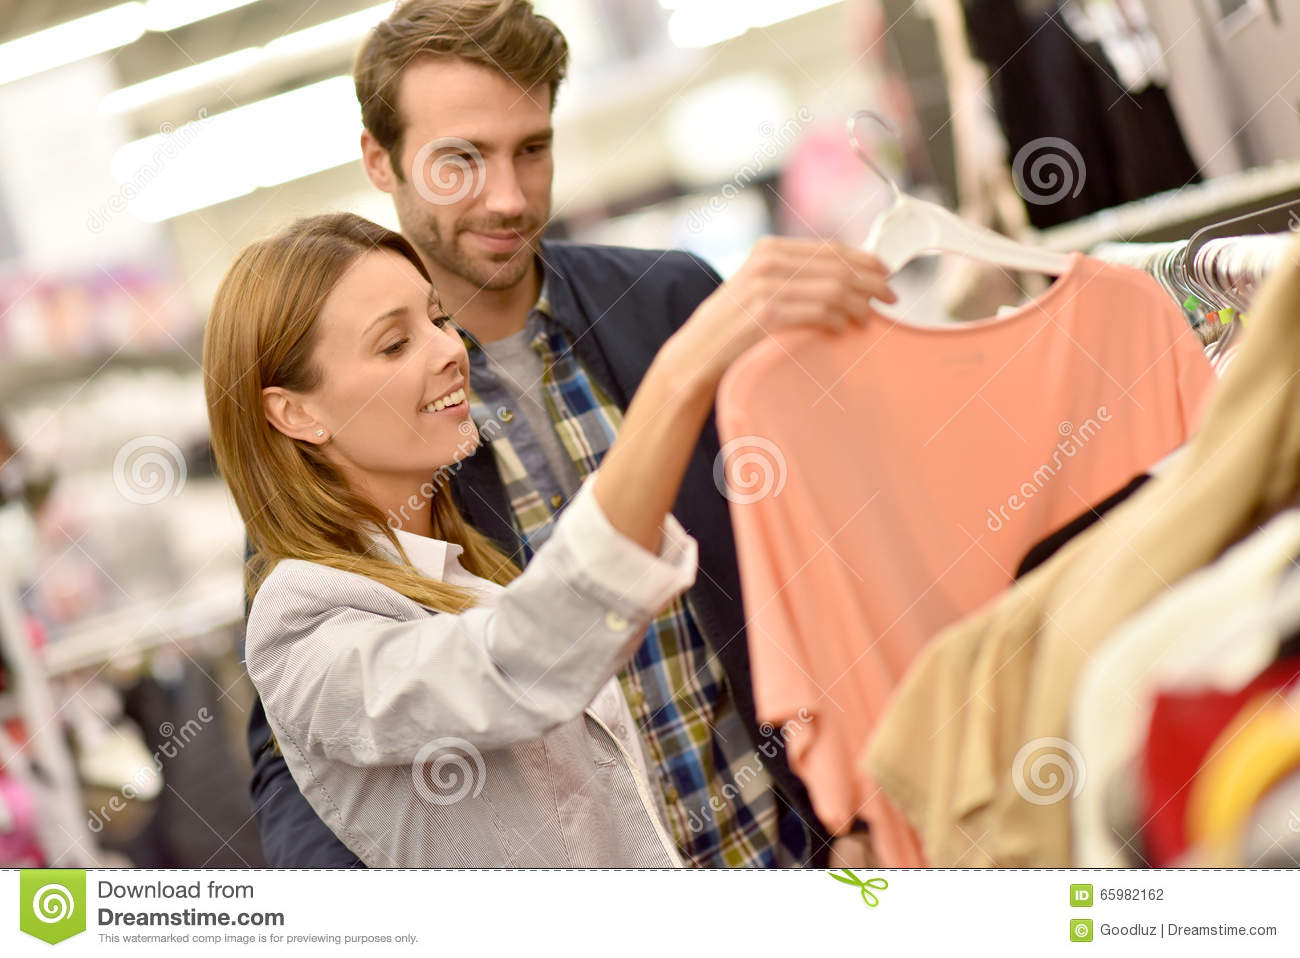 baa5989bec Couple shopping together in clothing store. More similar stock images